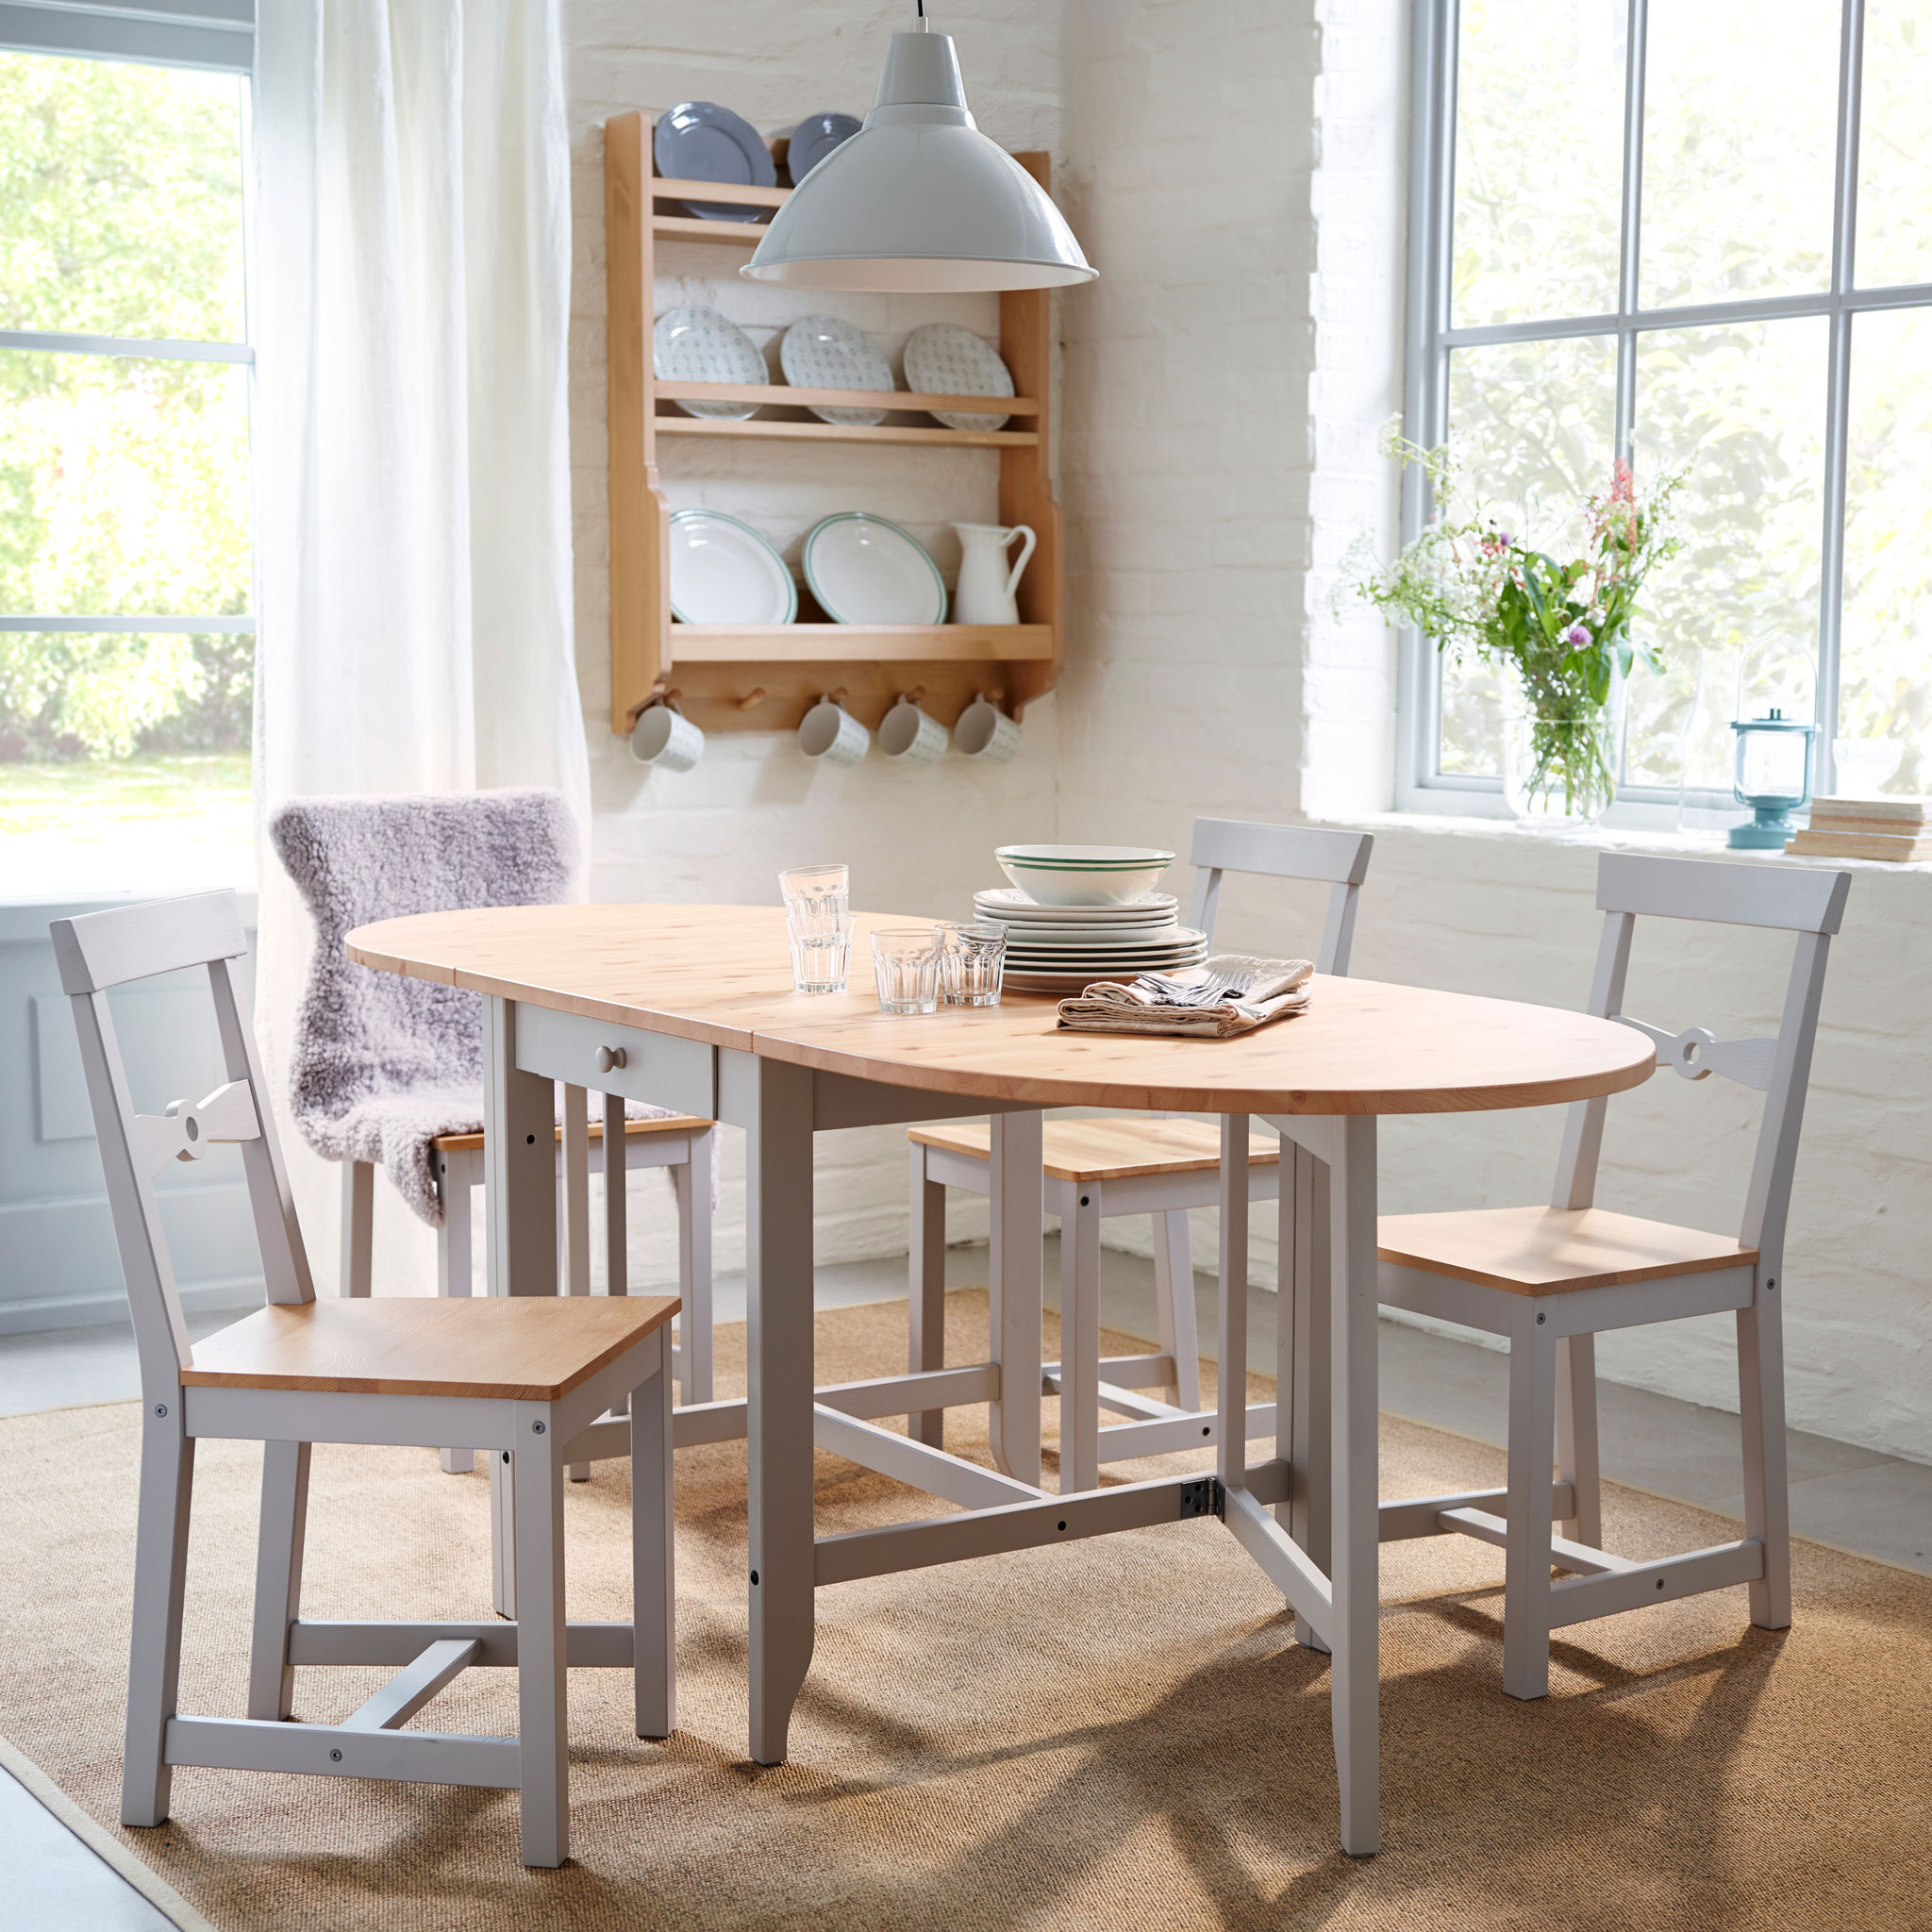 ikea dining room event suitable with ikea dining room furniture uk suitable with ikea dining room sideboard